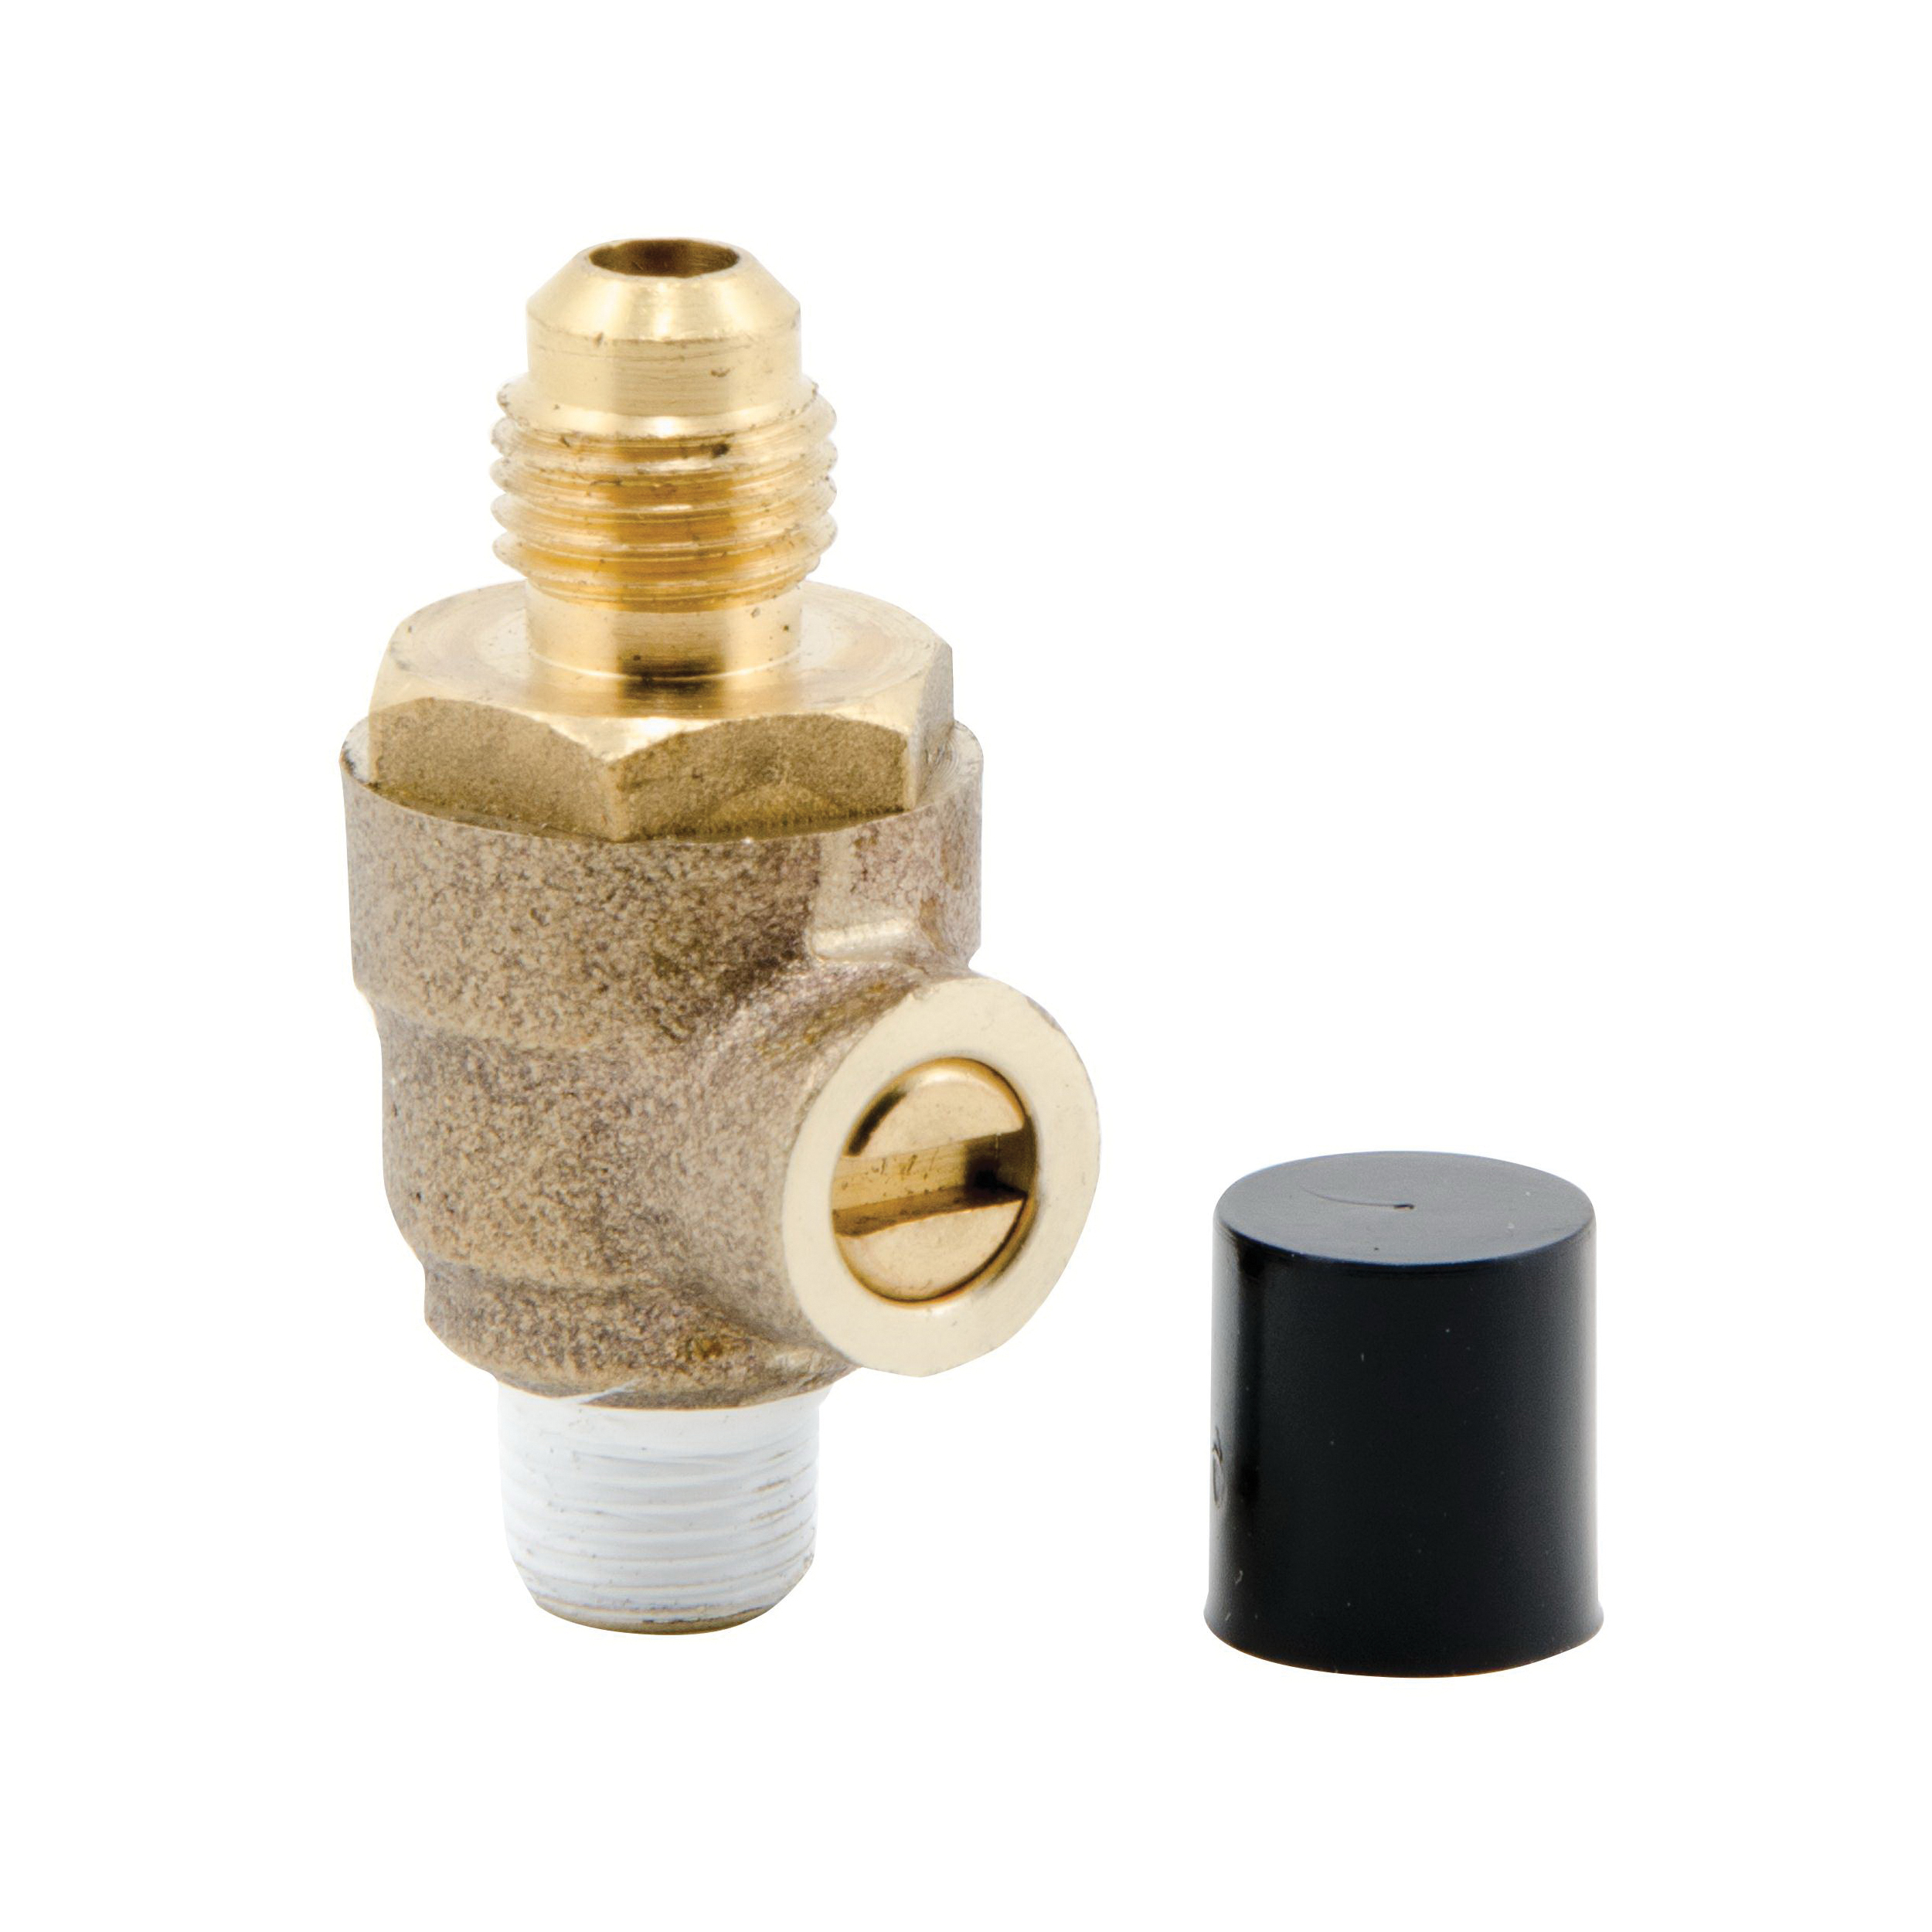 WATTS® 0792002 1/4 Turn Test Cock, For Use With 1/4 to 1 in Backflow Preventer or Isolation Valve, 1/8 in Male x SAE